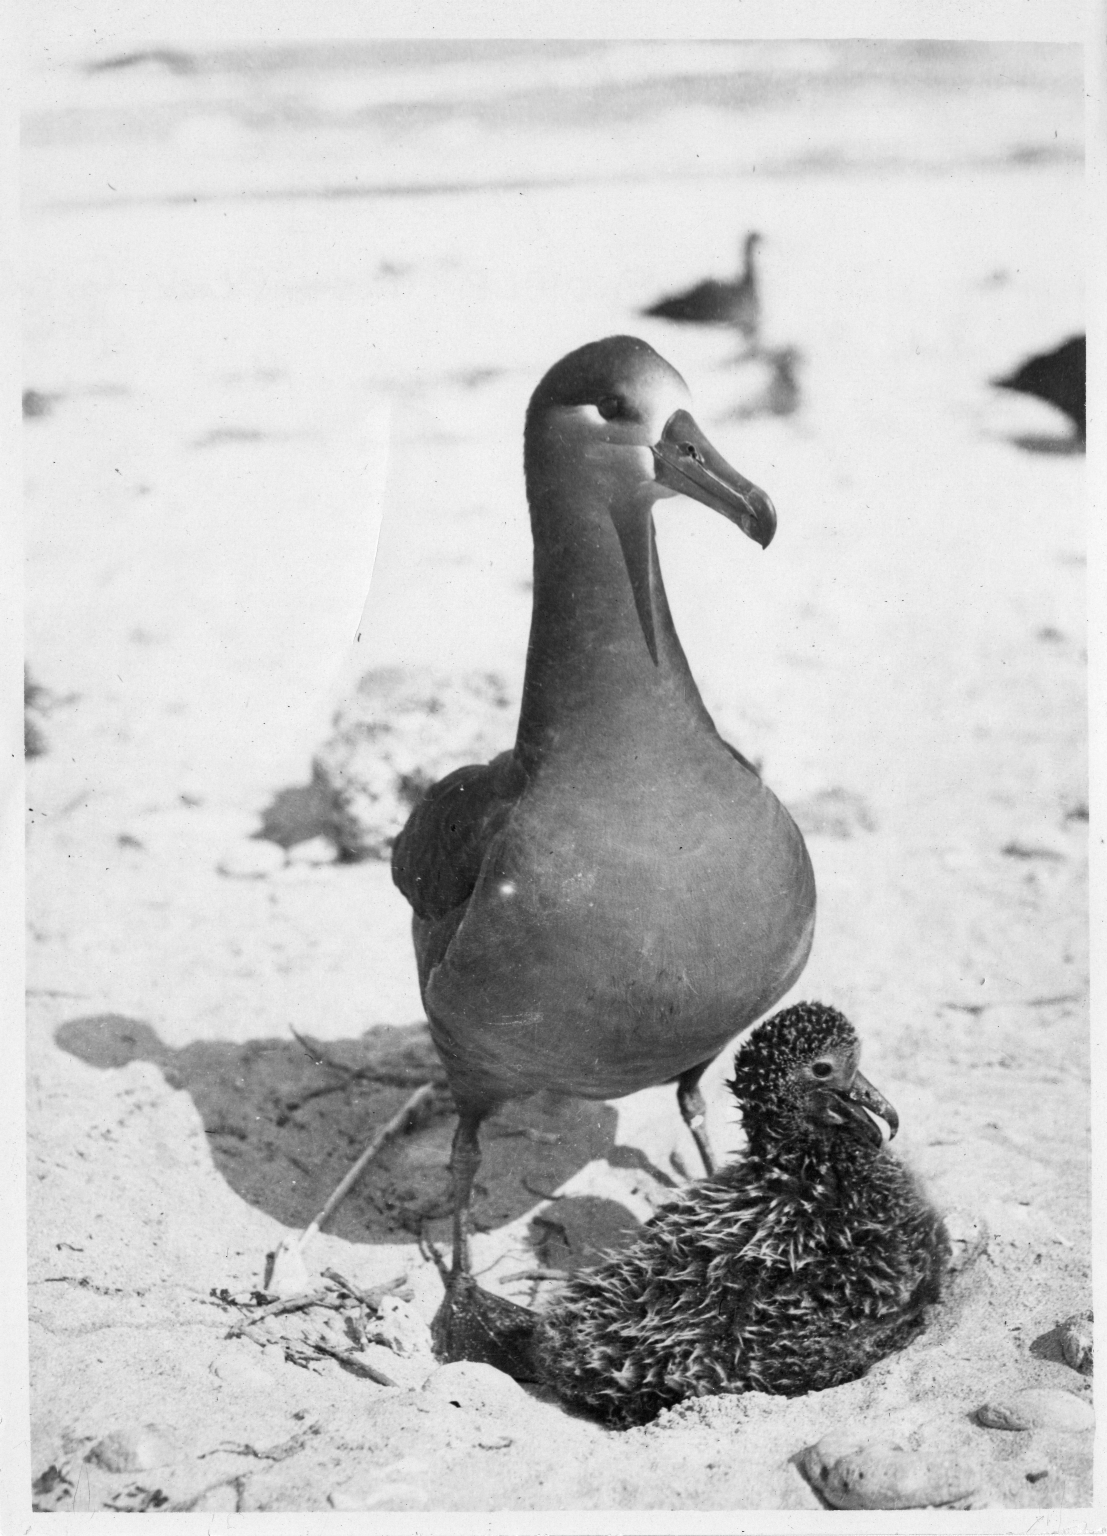 Black-footed Albatross with chick on nest